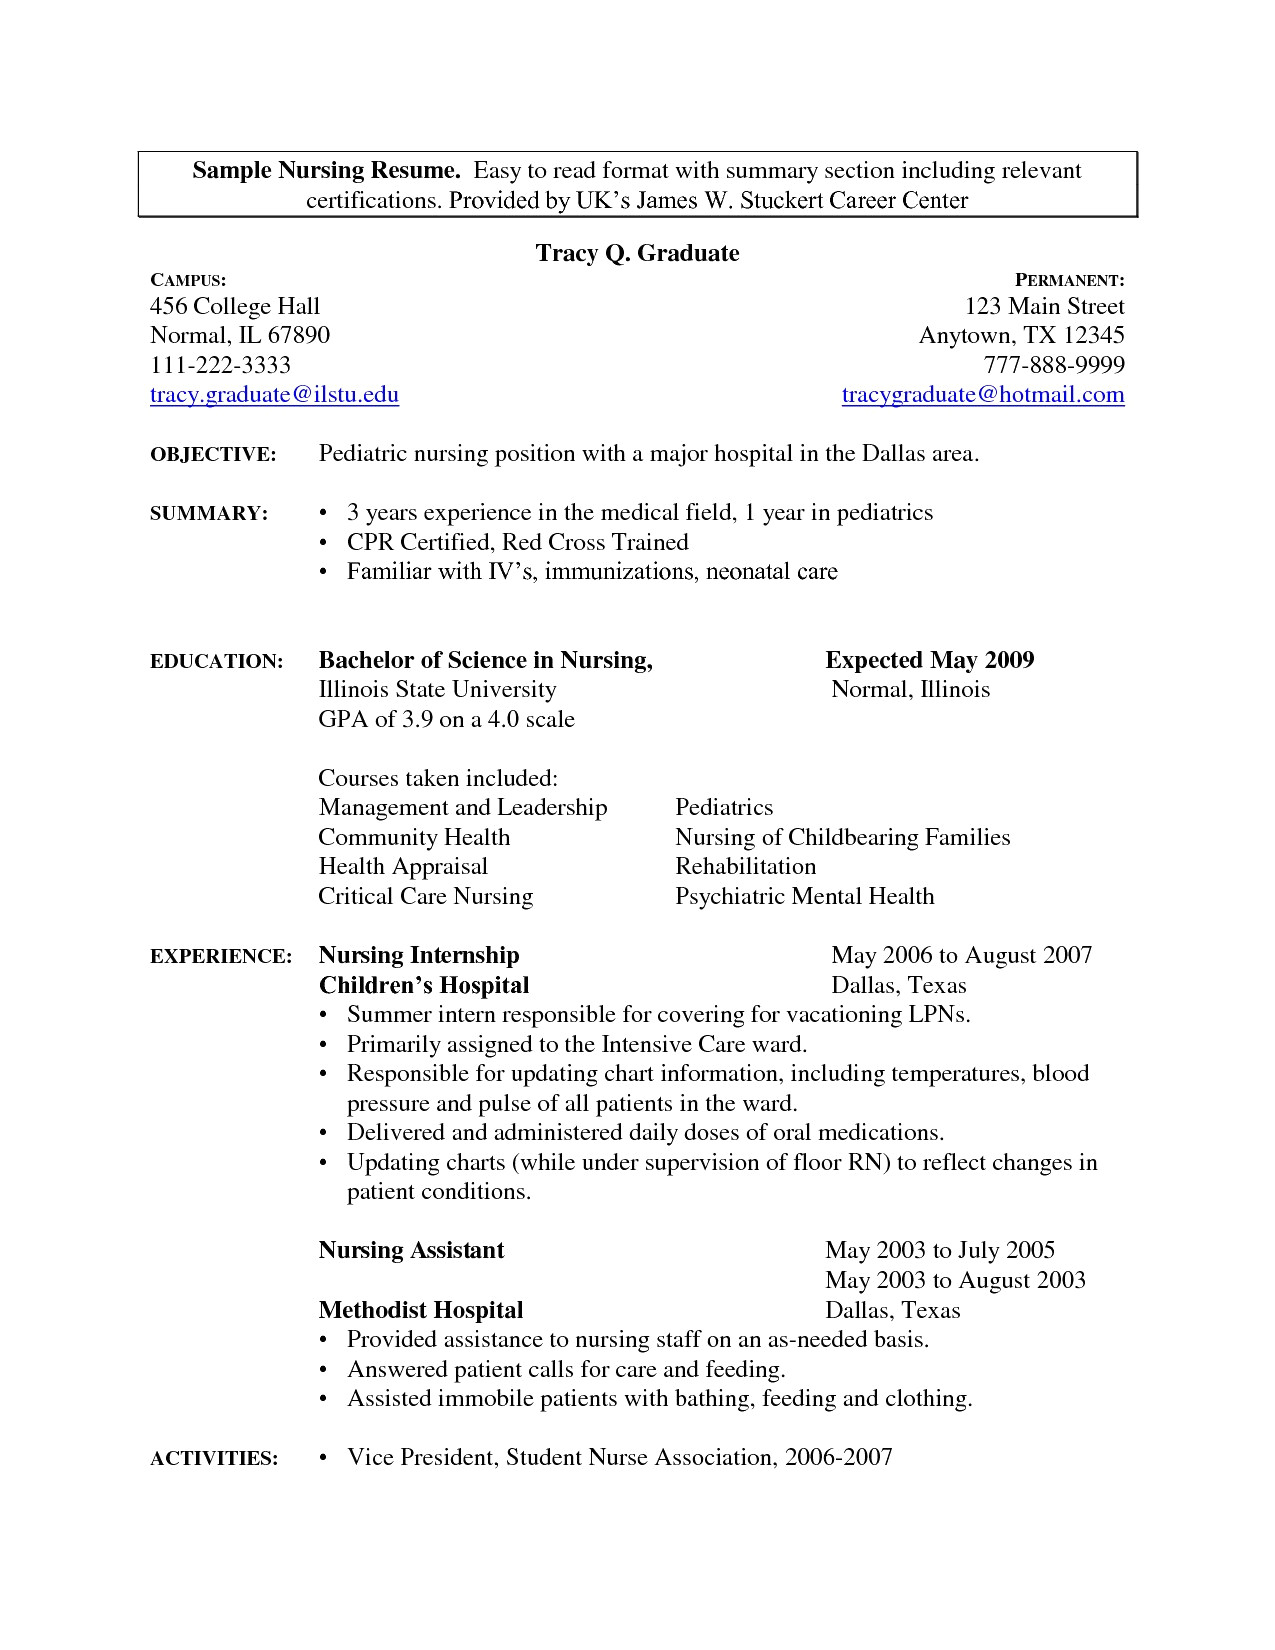 Paralegal Resume Skills - 39 Awesome Sample Resume Skills